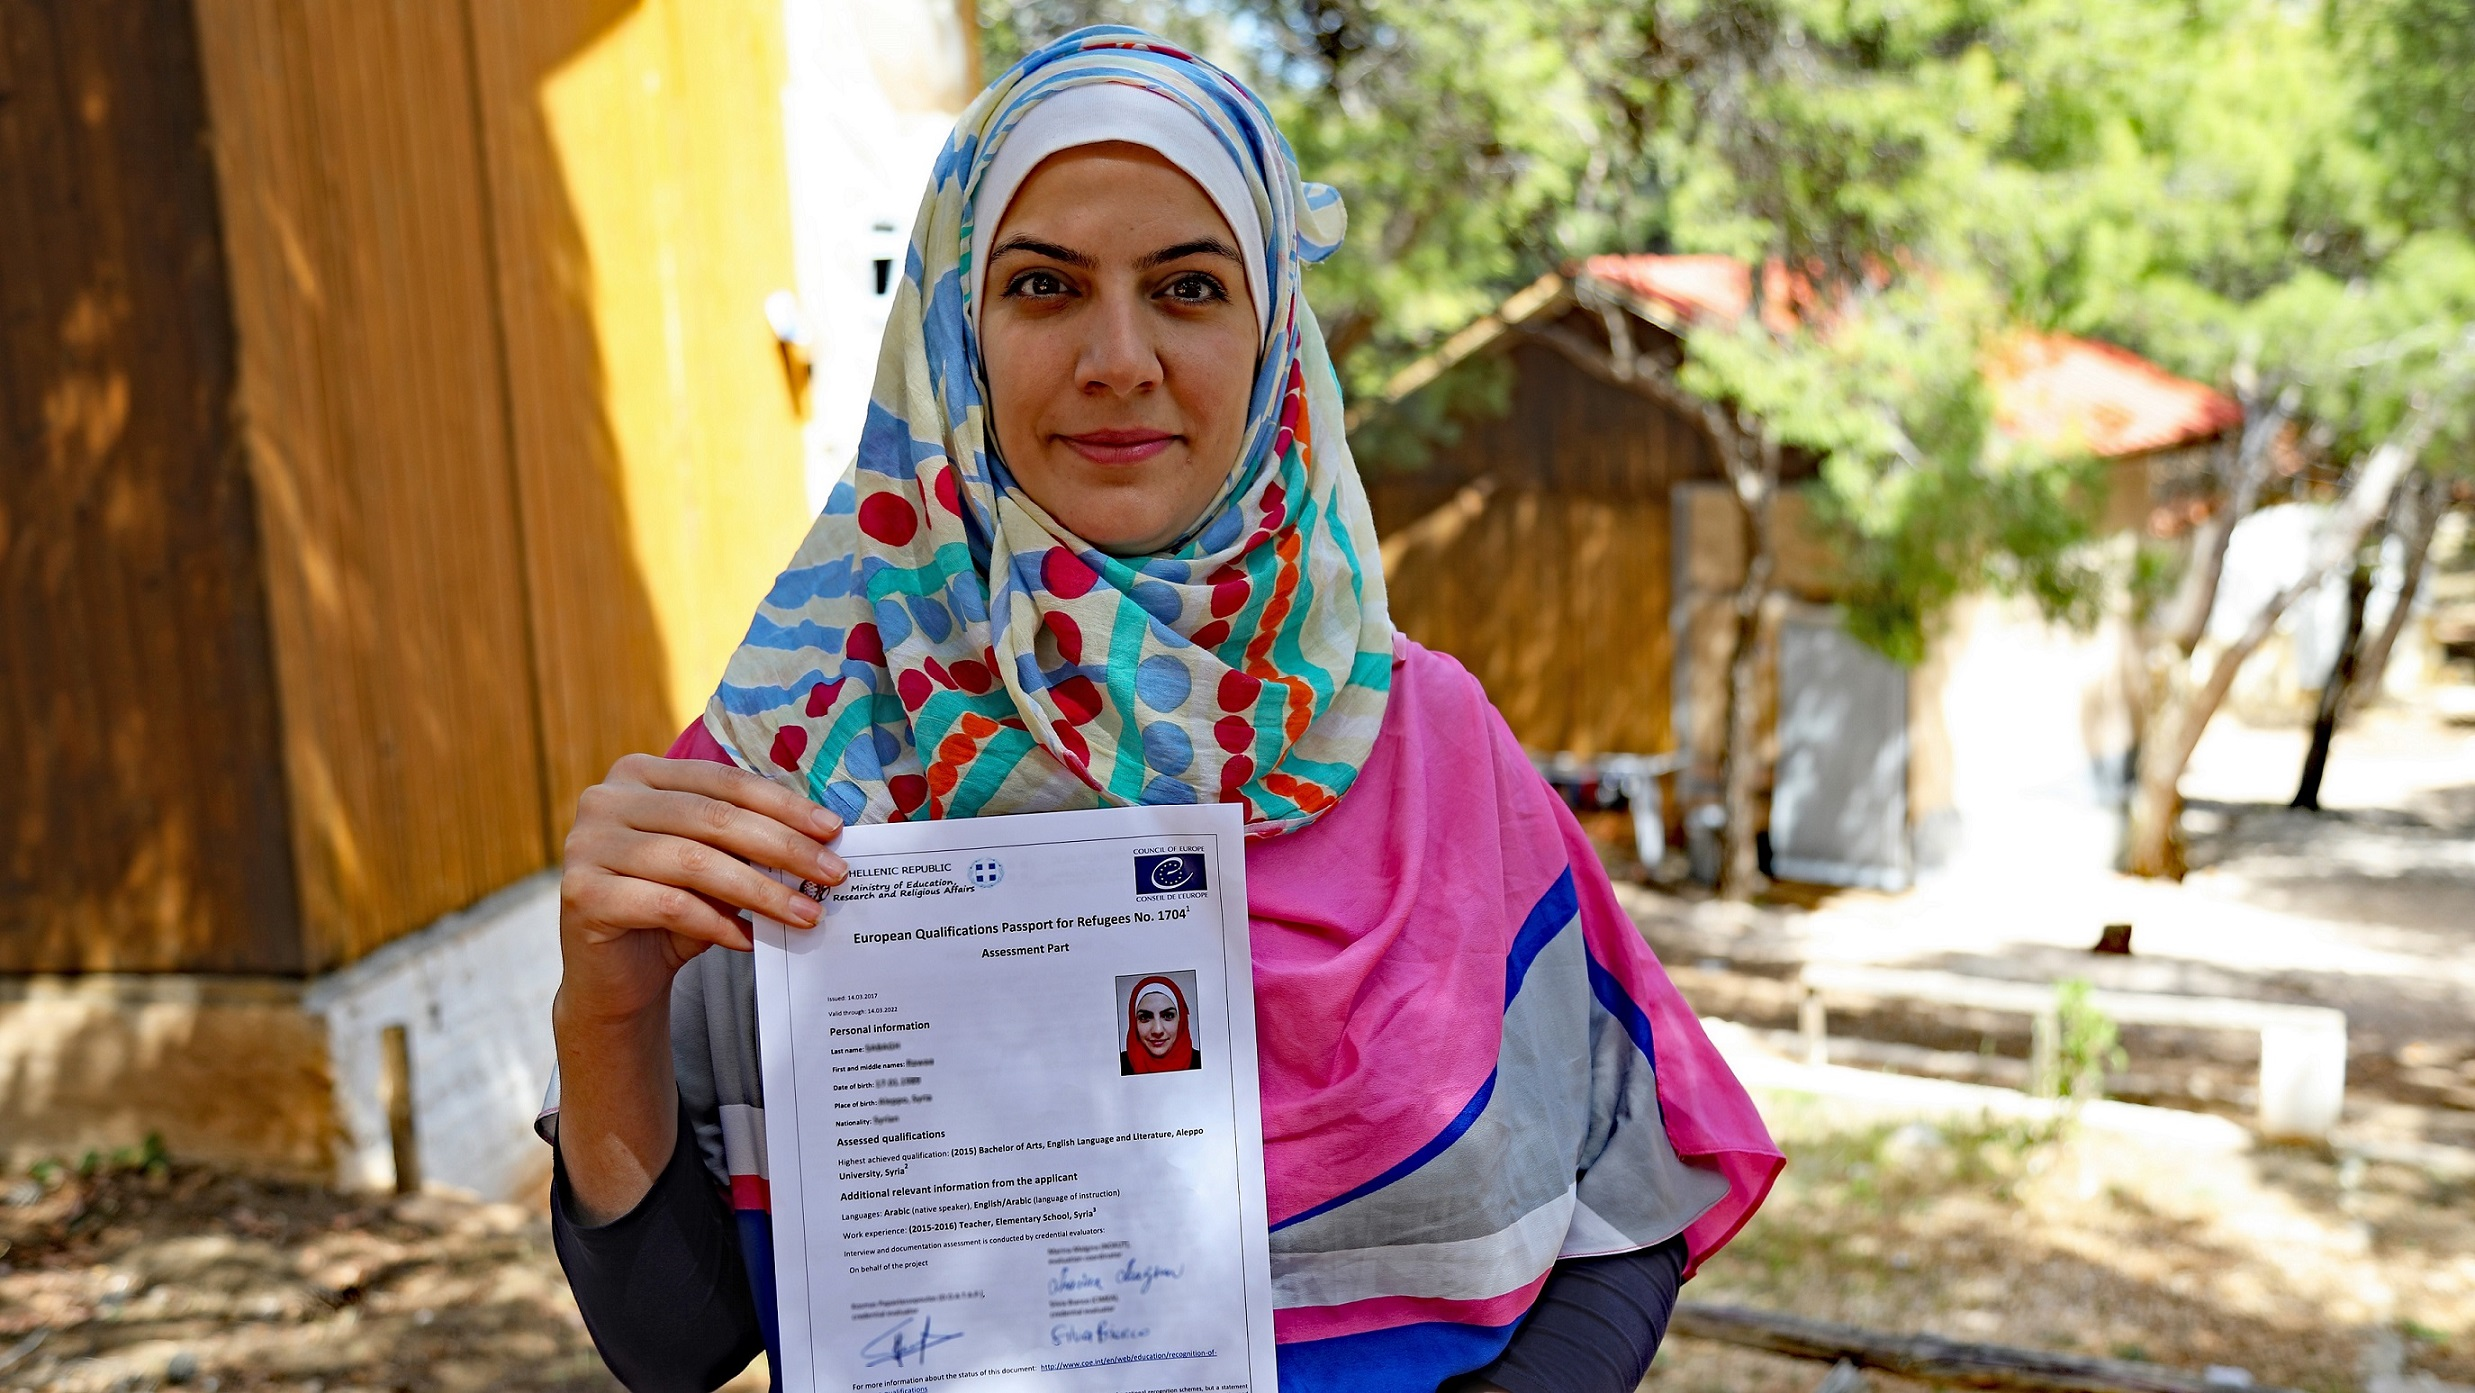 European Qualifications Passport for Refugees issued - Rawaa